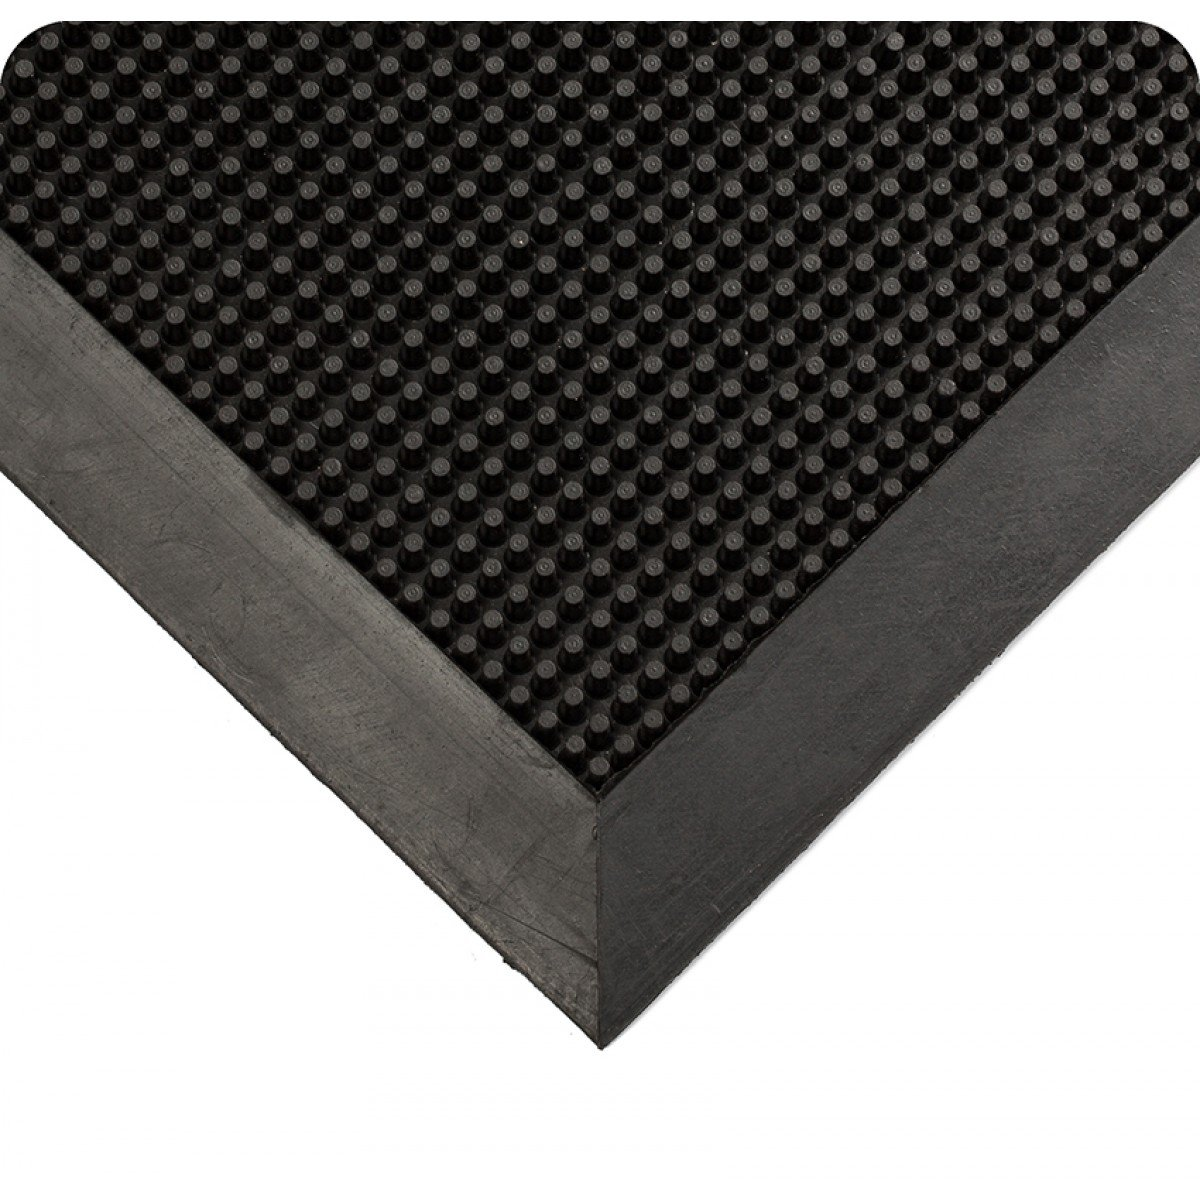 Wearwell Natural Rubber 220 Multi-Guard Heavy Duty Mat, for Outdoor Entrances, 3' Width x 5' Length x 1/2'' Thickness, Black